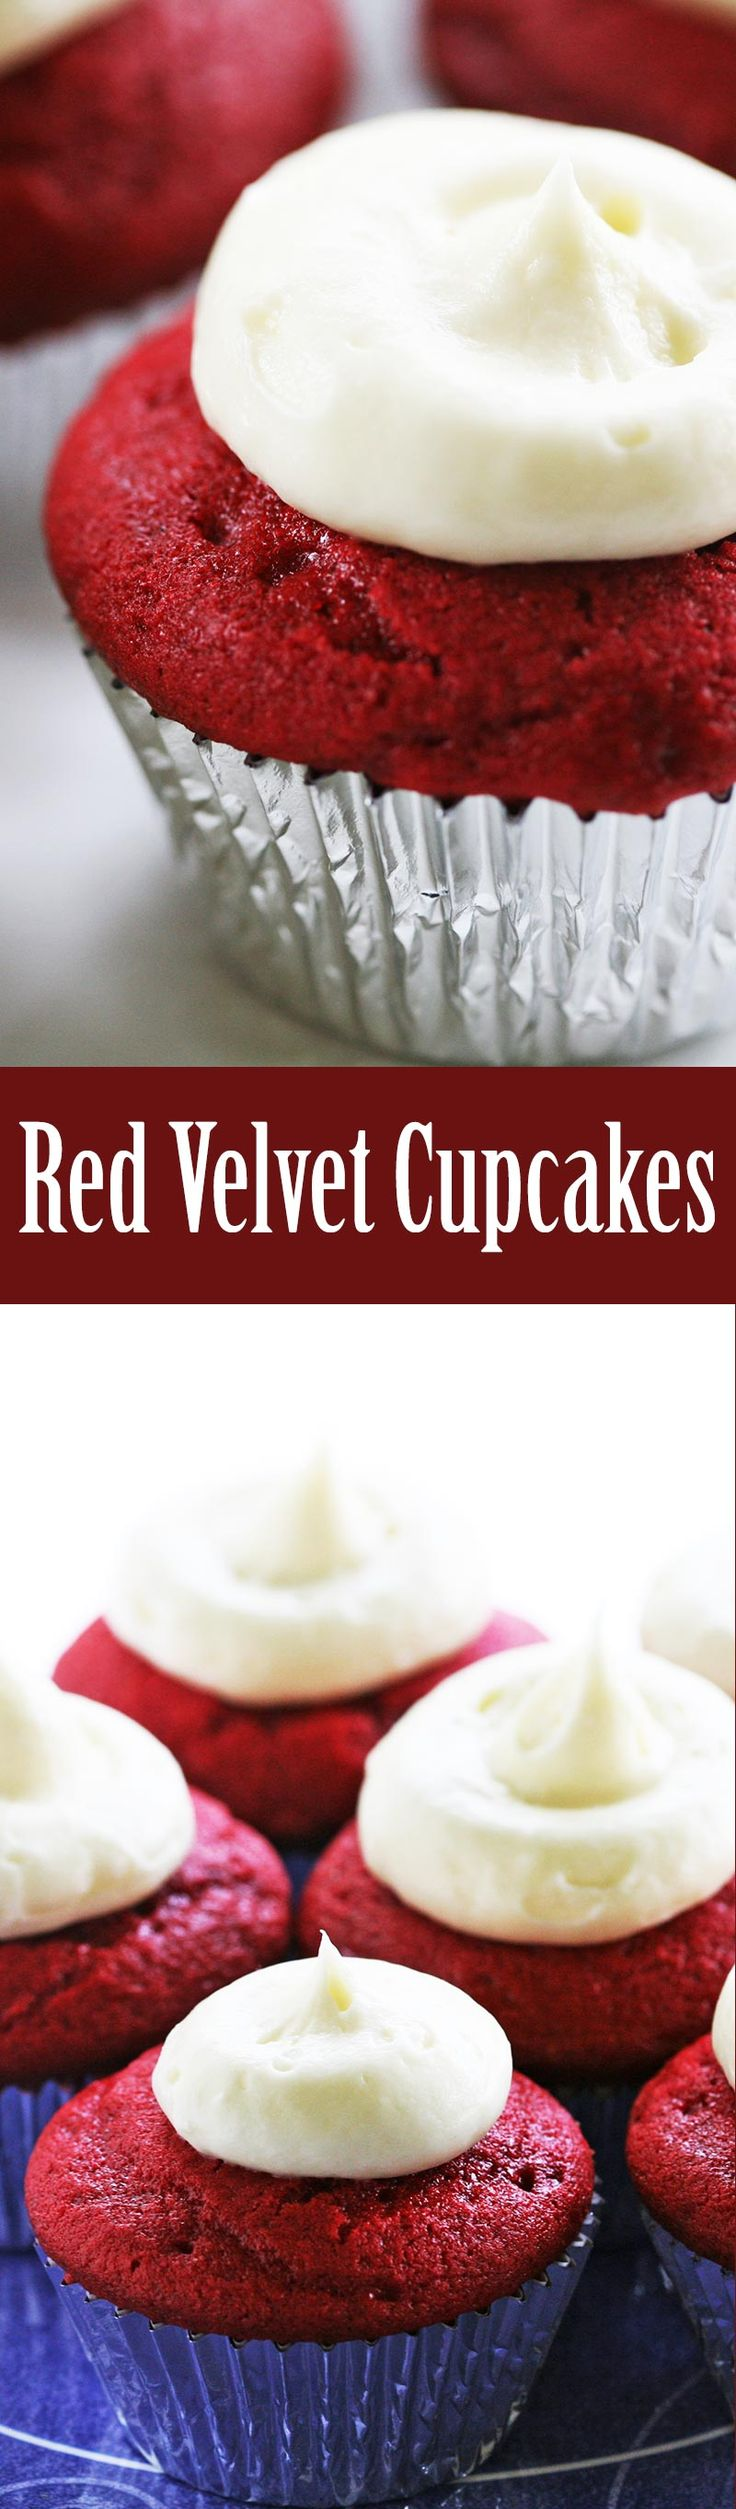 Love red velvet cake? Here it is in cupcake form! Classic red velvet cupcakes with a luscious cream cheese frosting. On SimplyRecipes.com #FourthOfJuly